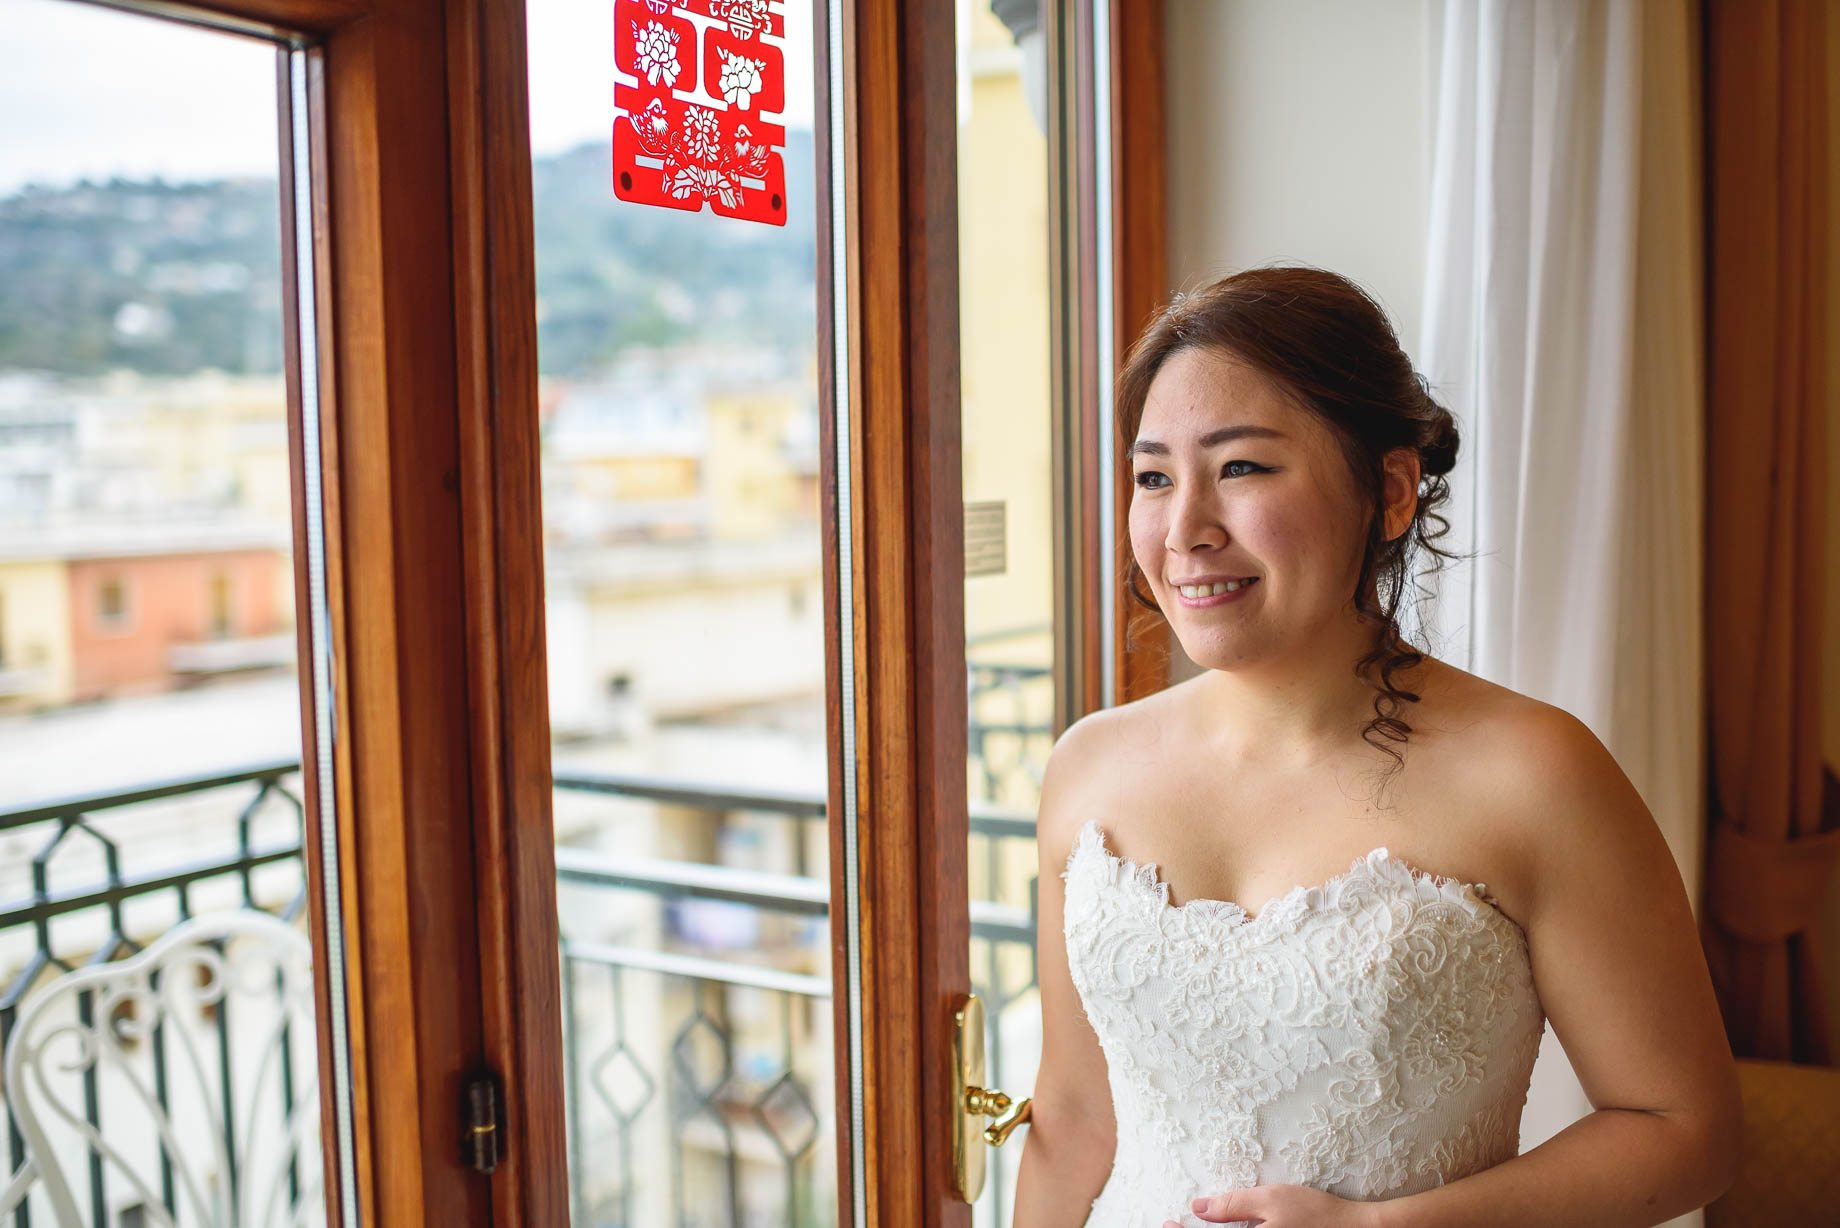 Sorrento wedding photography - Gloria and Eric (28 of 211)